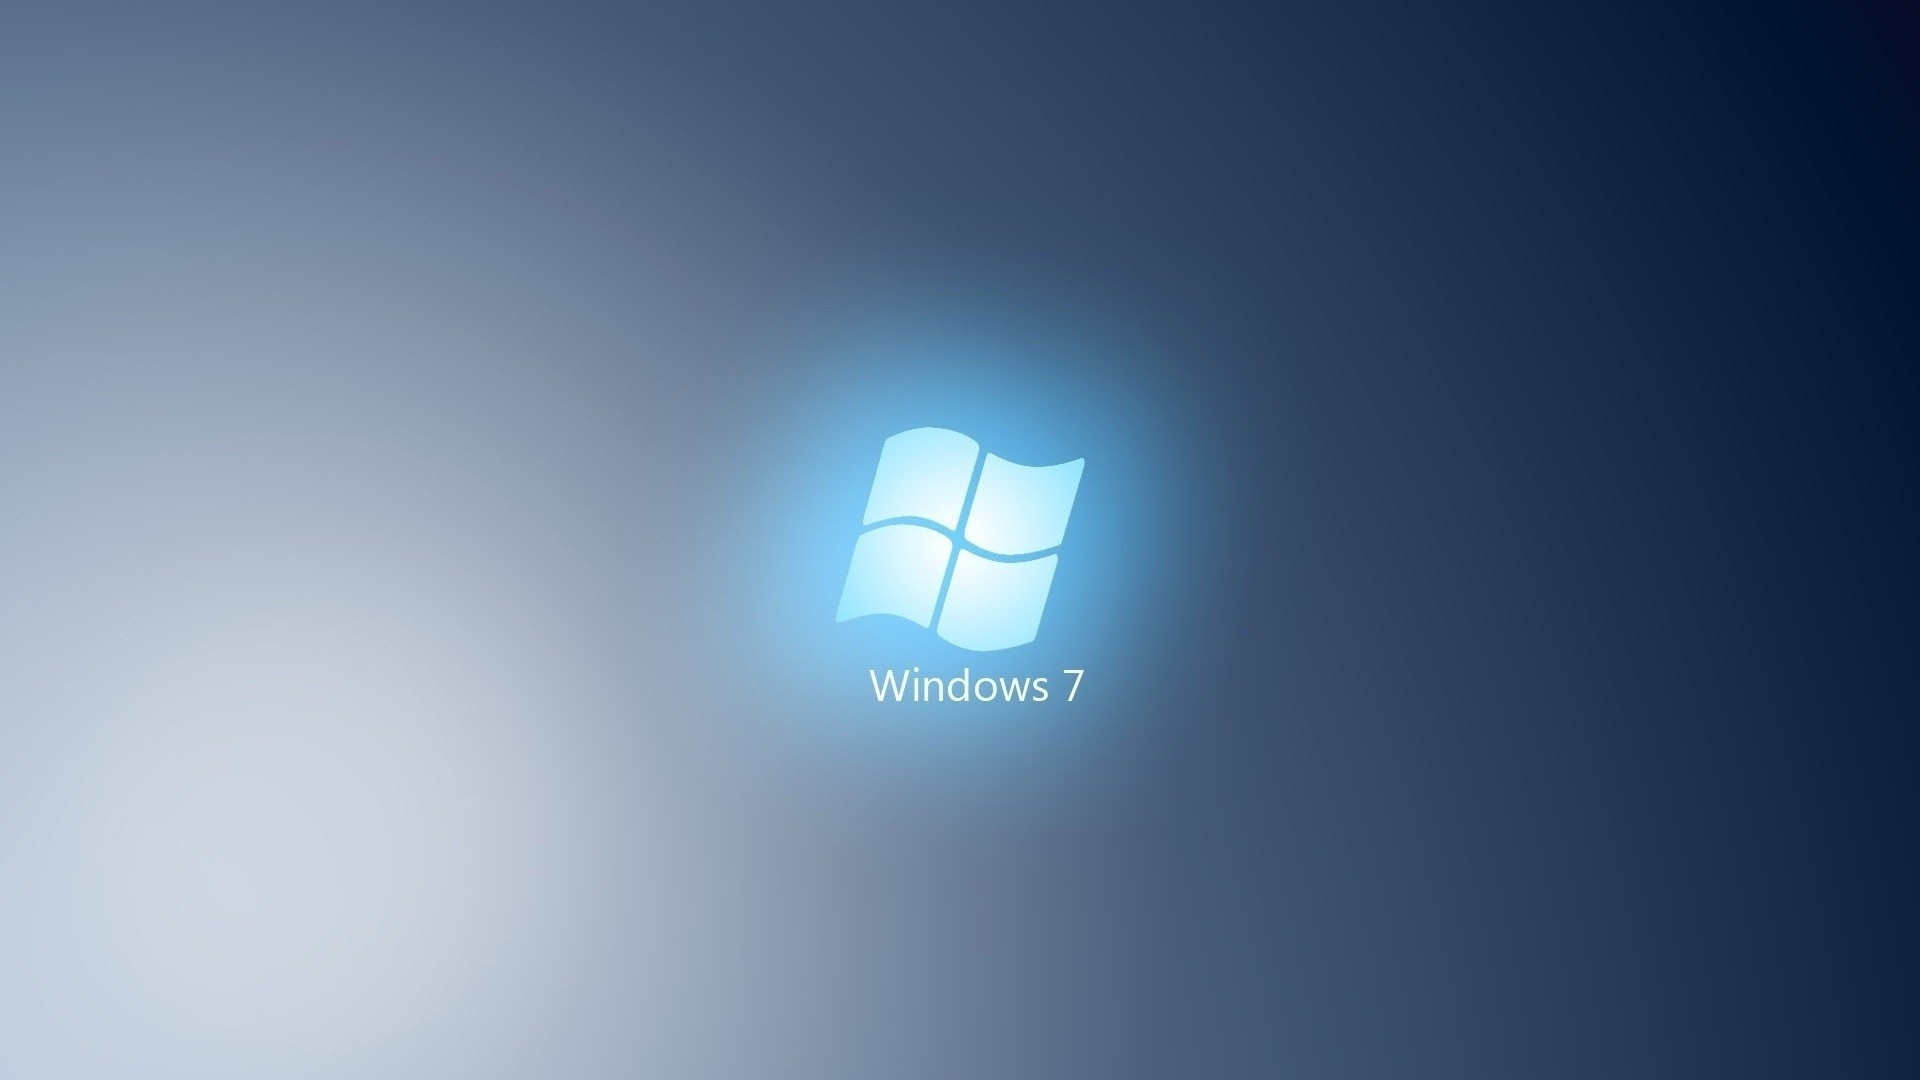 hd windows 7 backgrounds (76+ images)